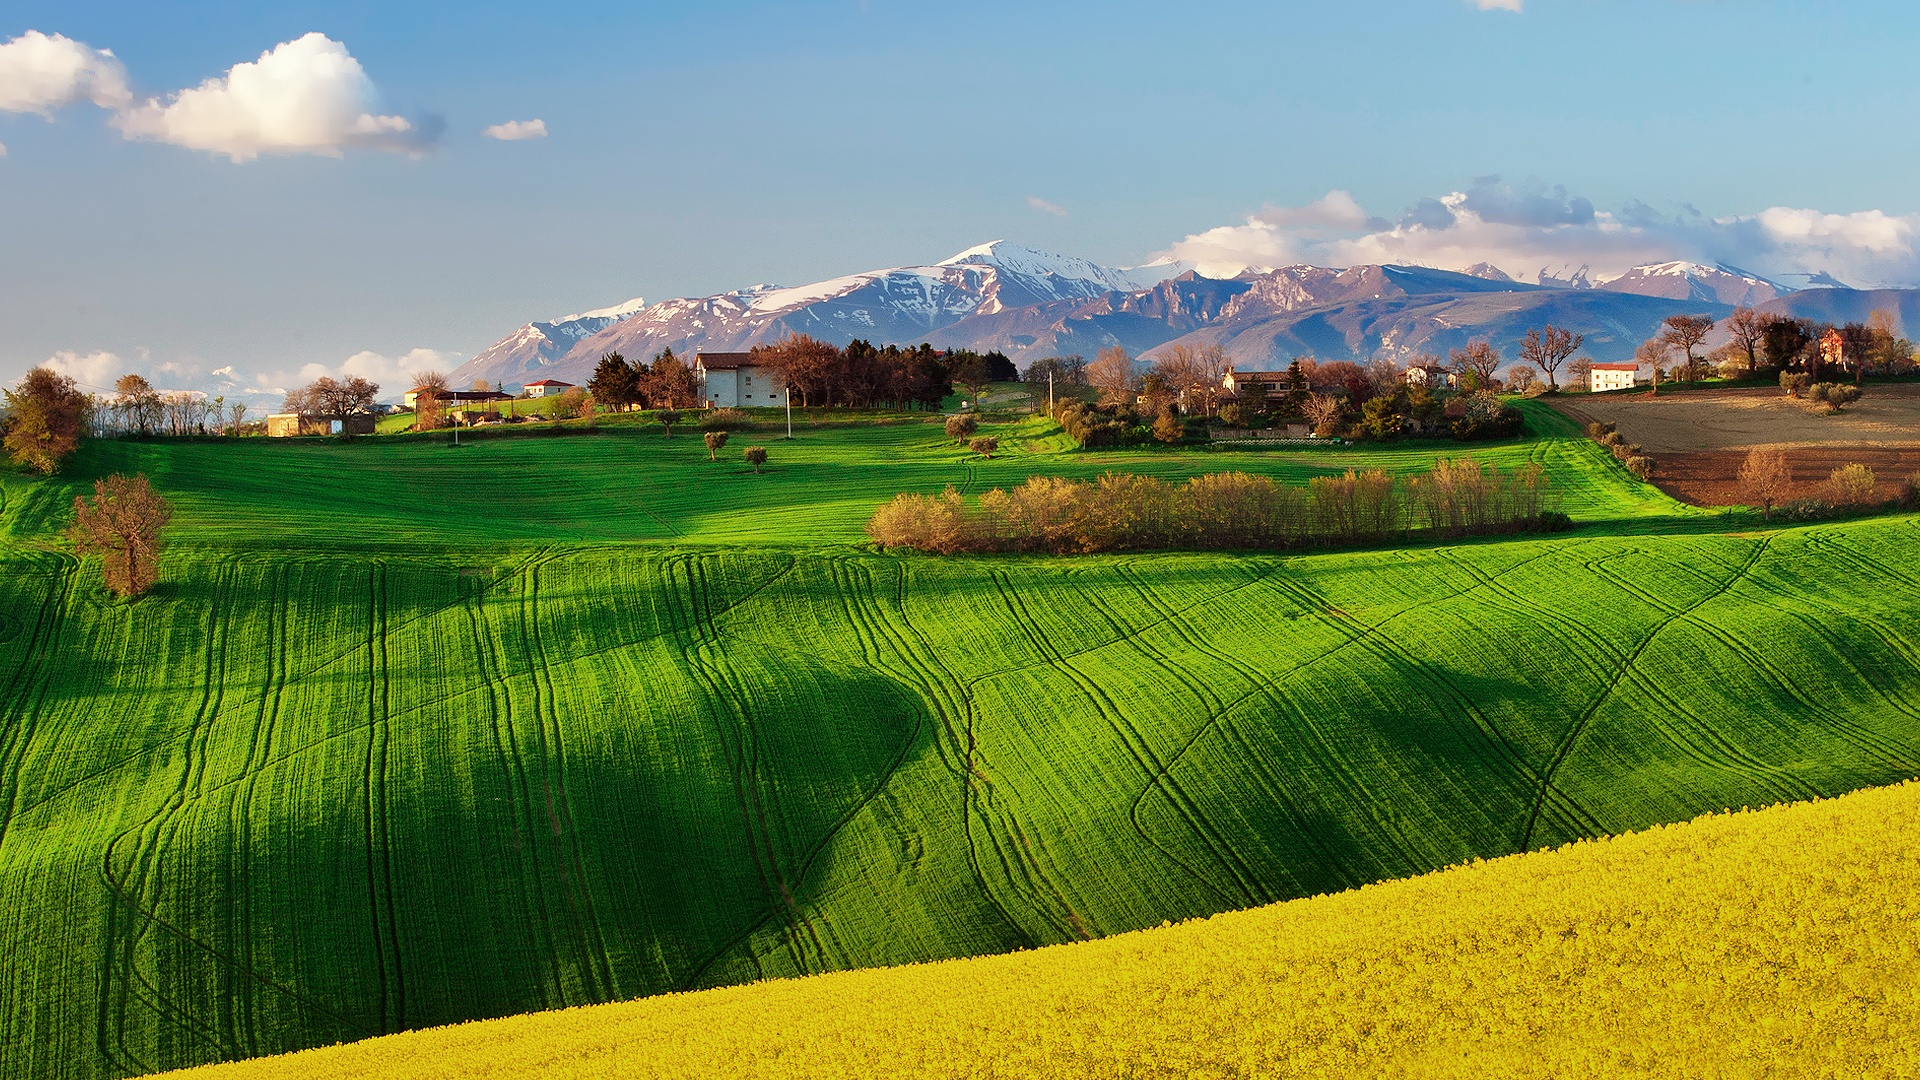 spring natural scenery hd - photo #7